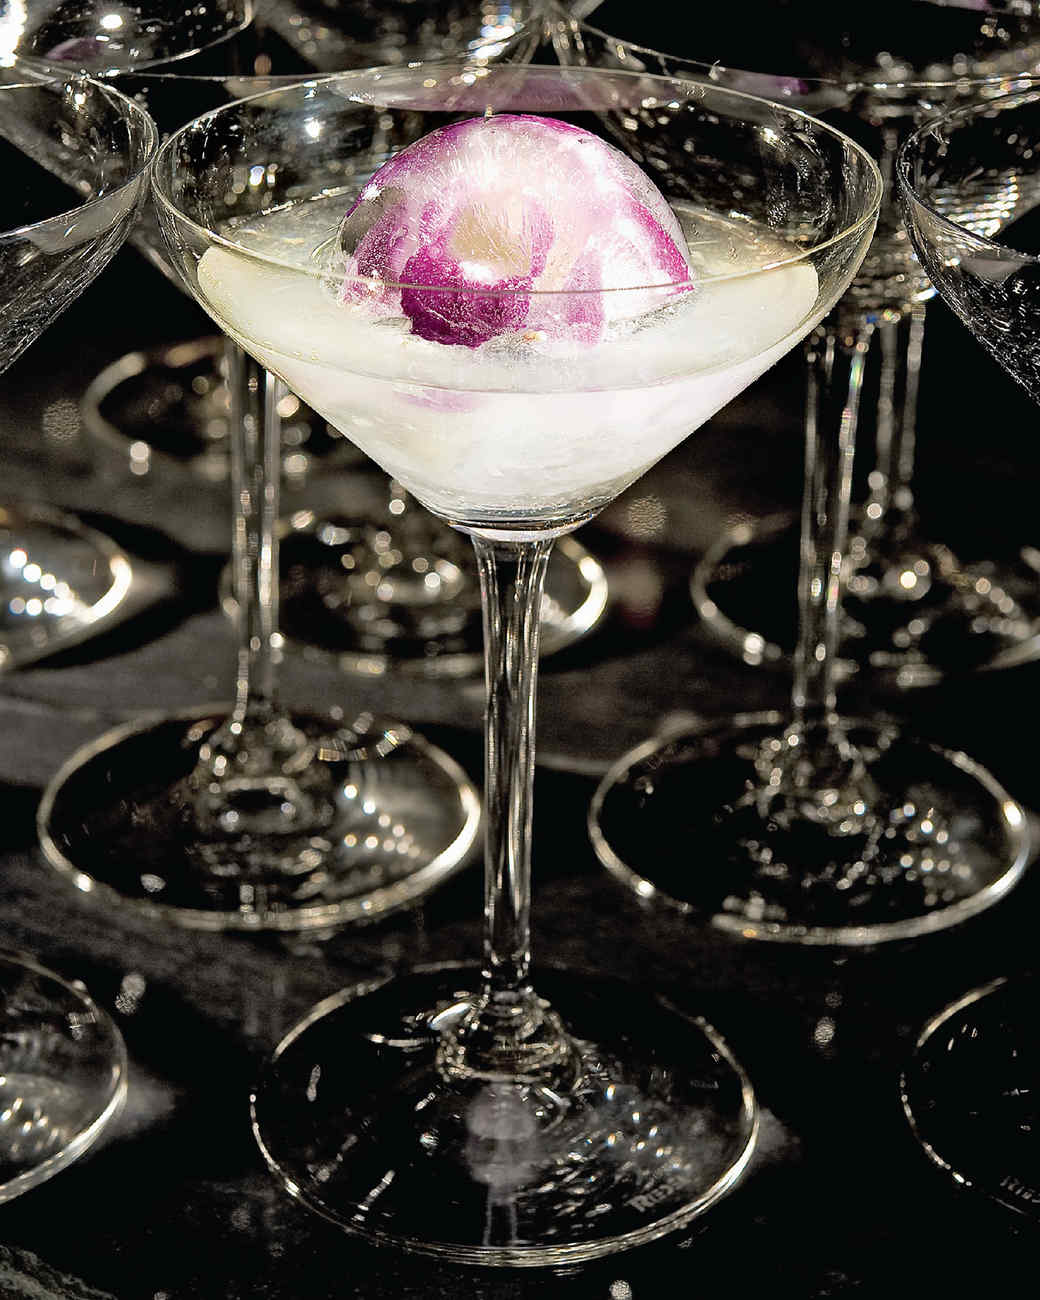 A beautiful (and edible) orchid adorns this cocktail from Chef Daniel Boulud.